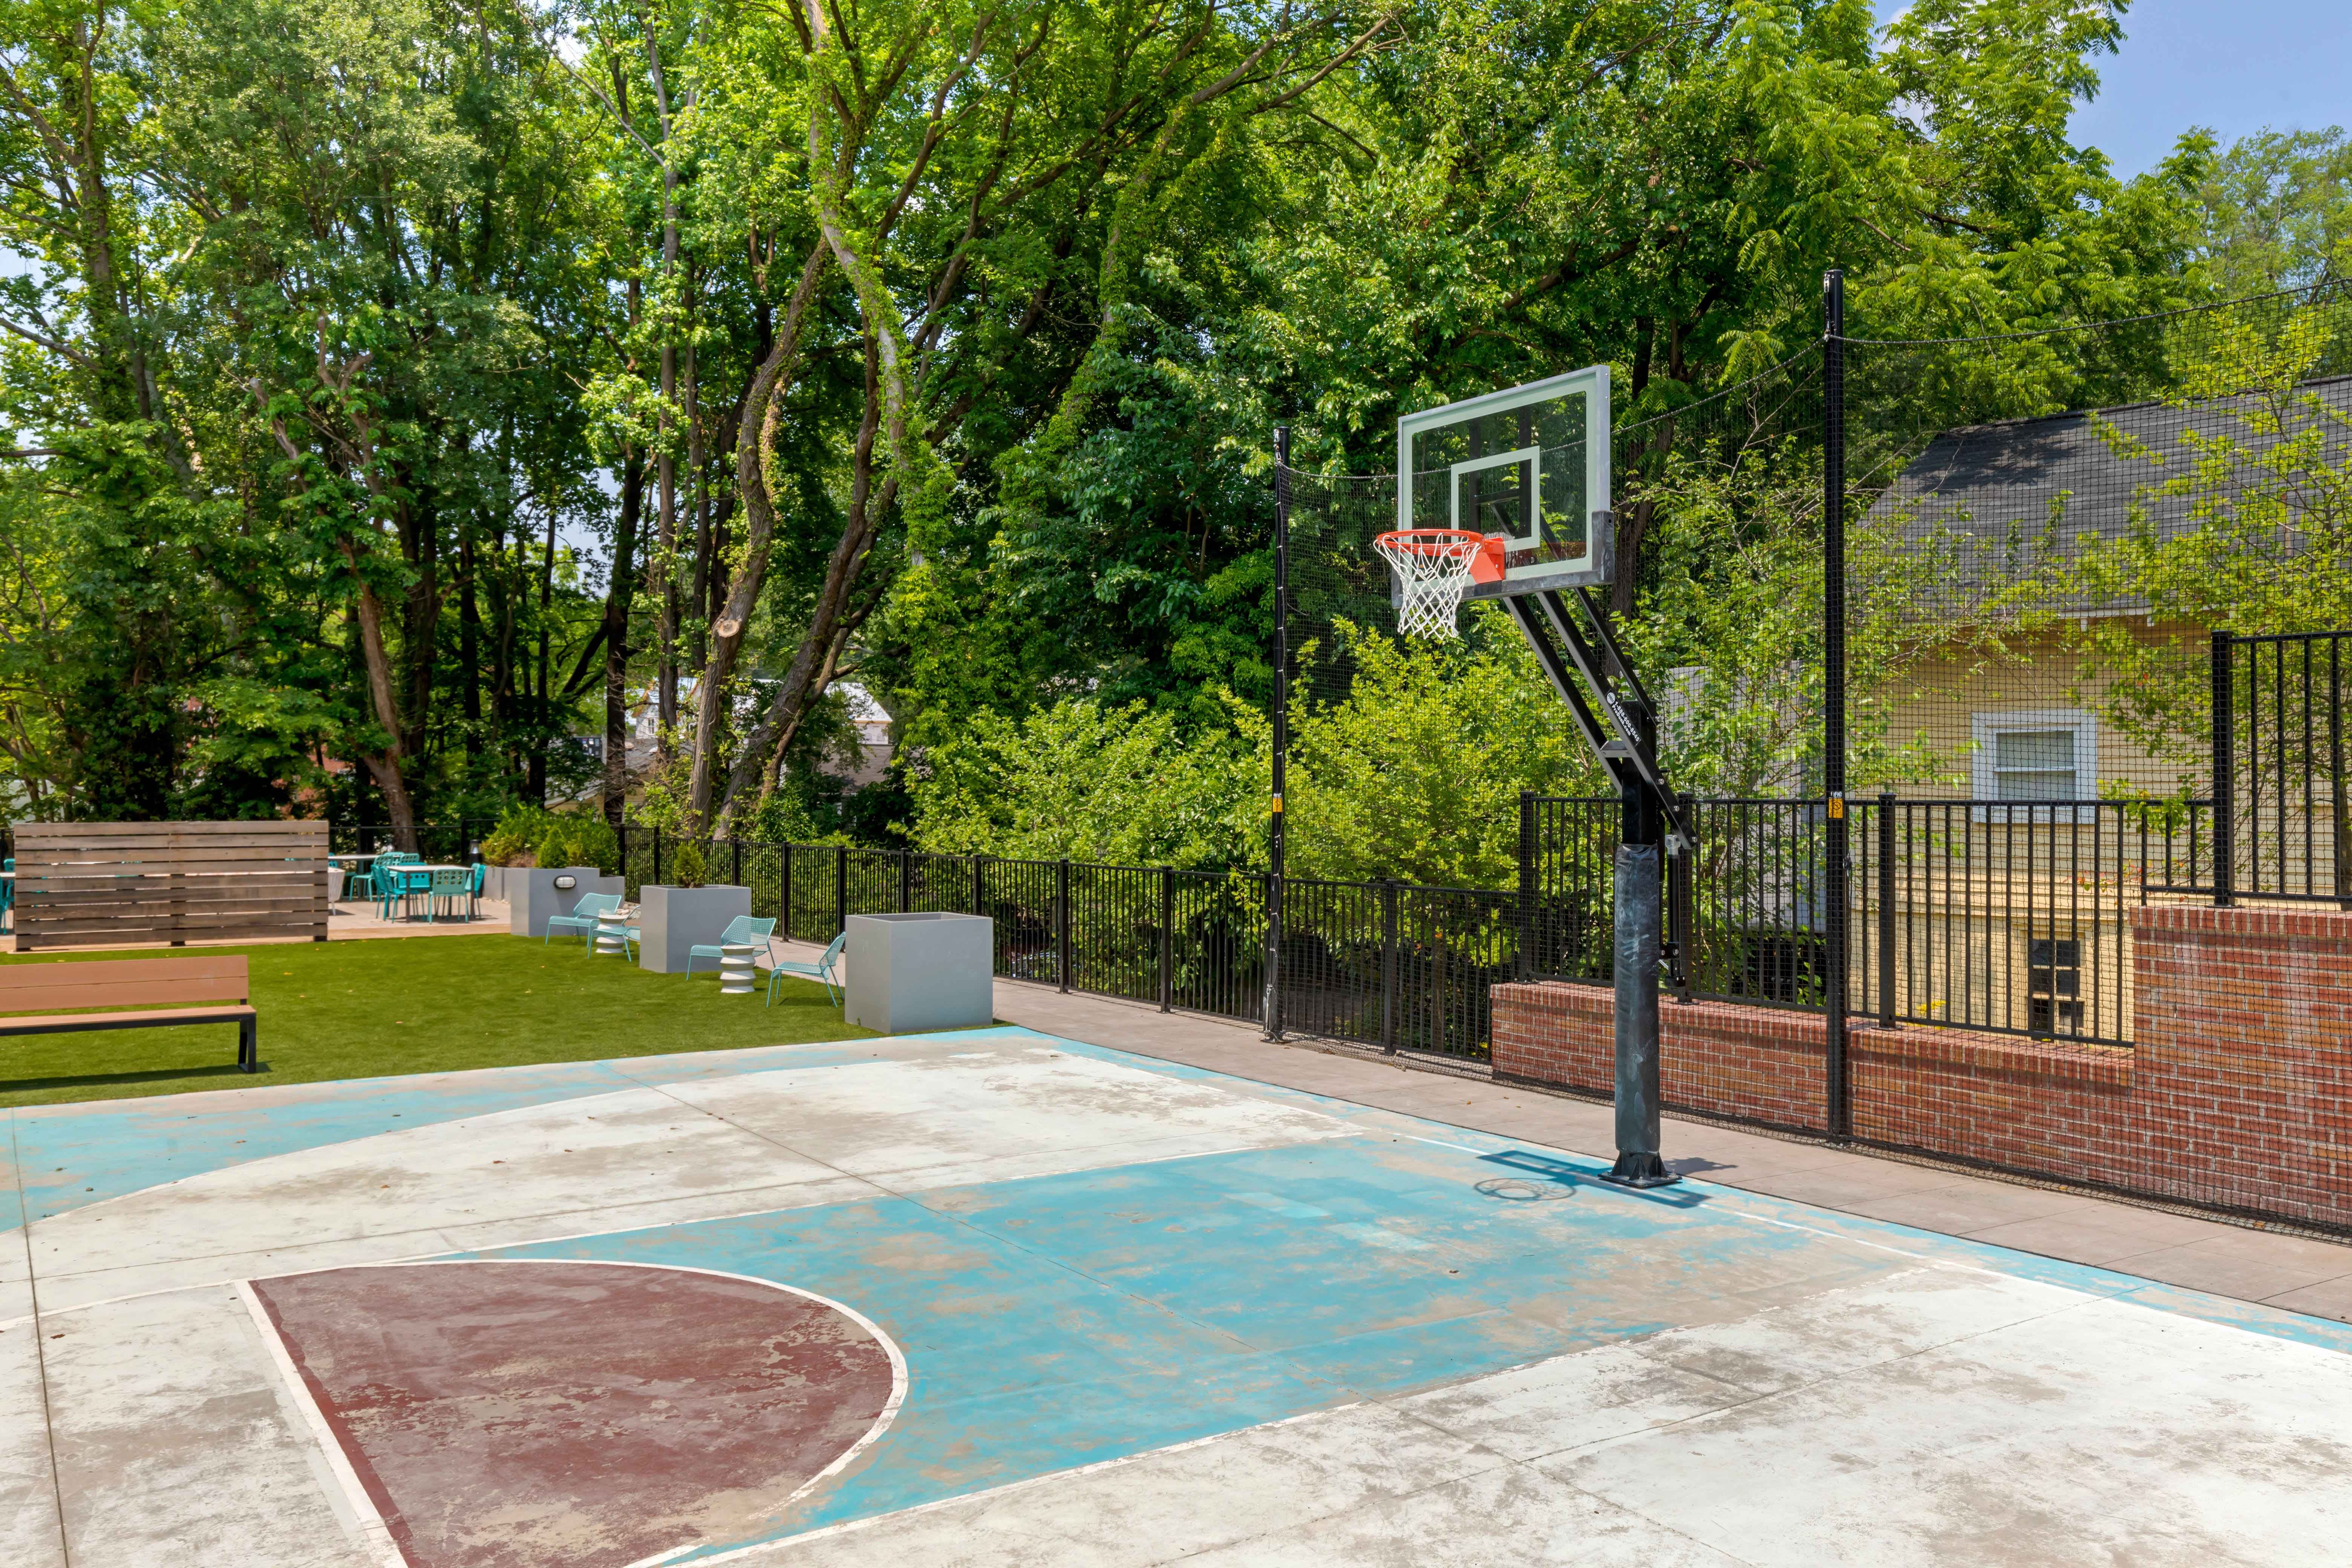 Basketball court at UNCOMMON Raleigh in Raleigh, North Carolina